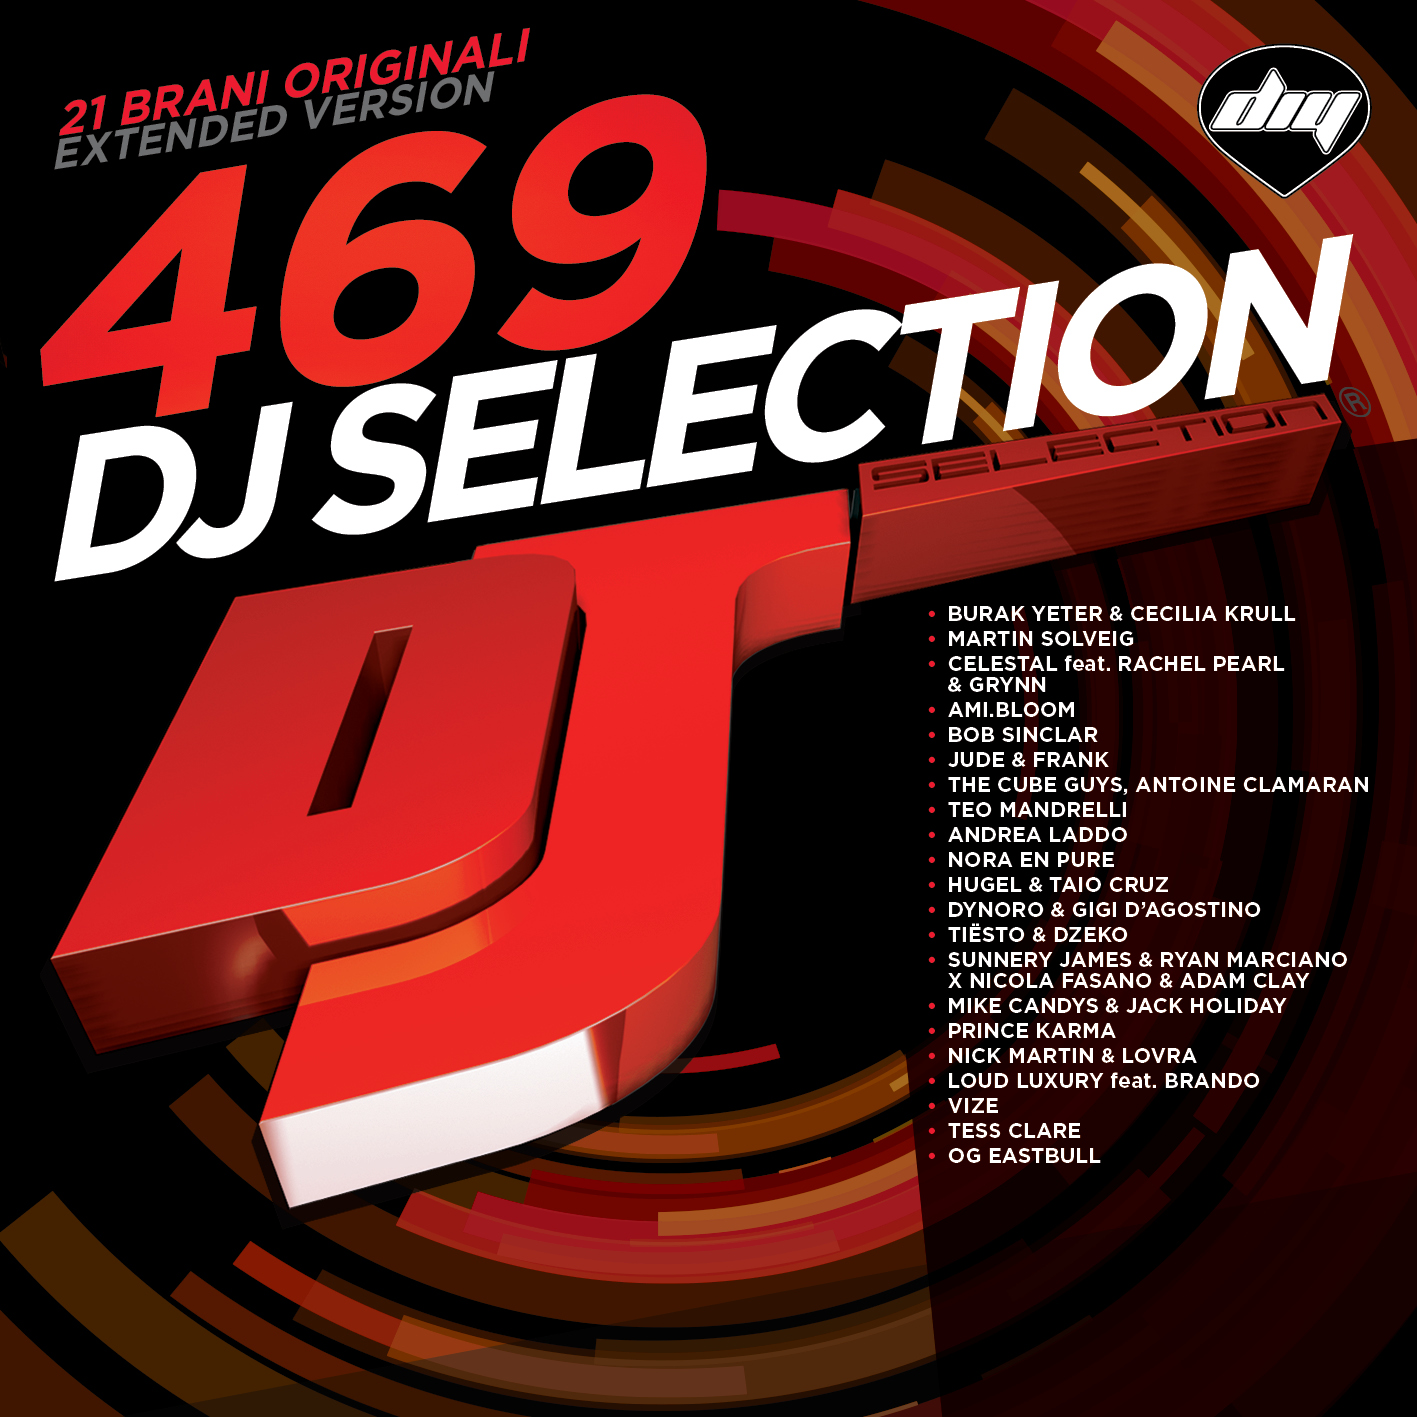 DJ SELECTION 469